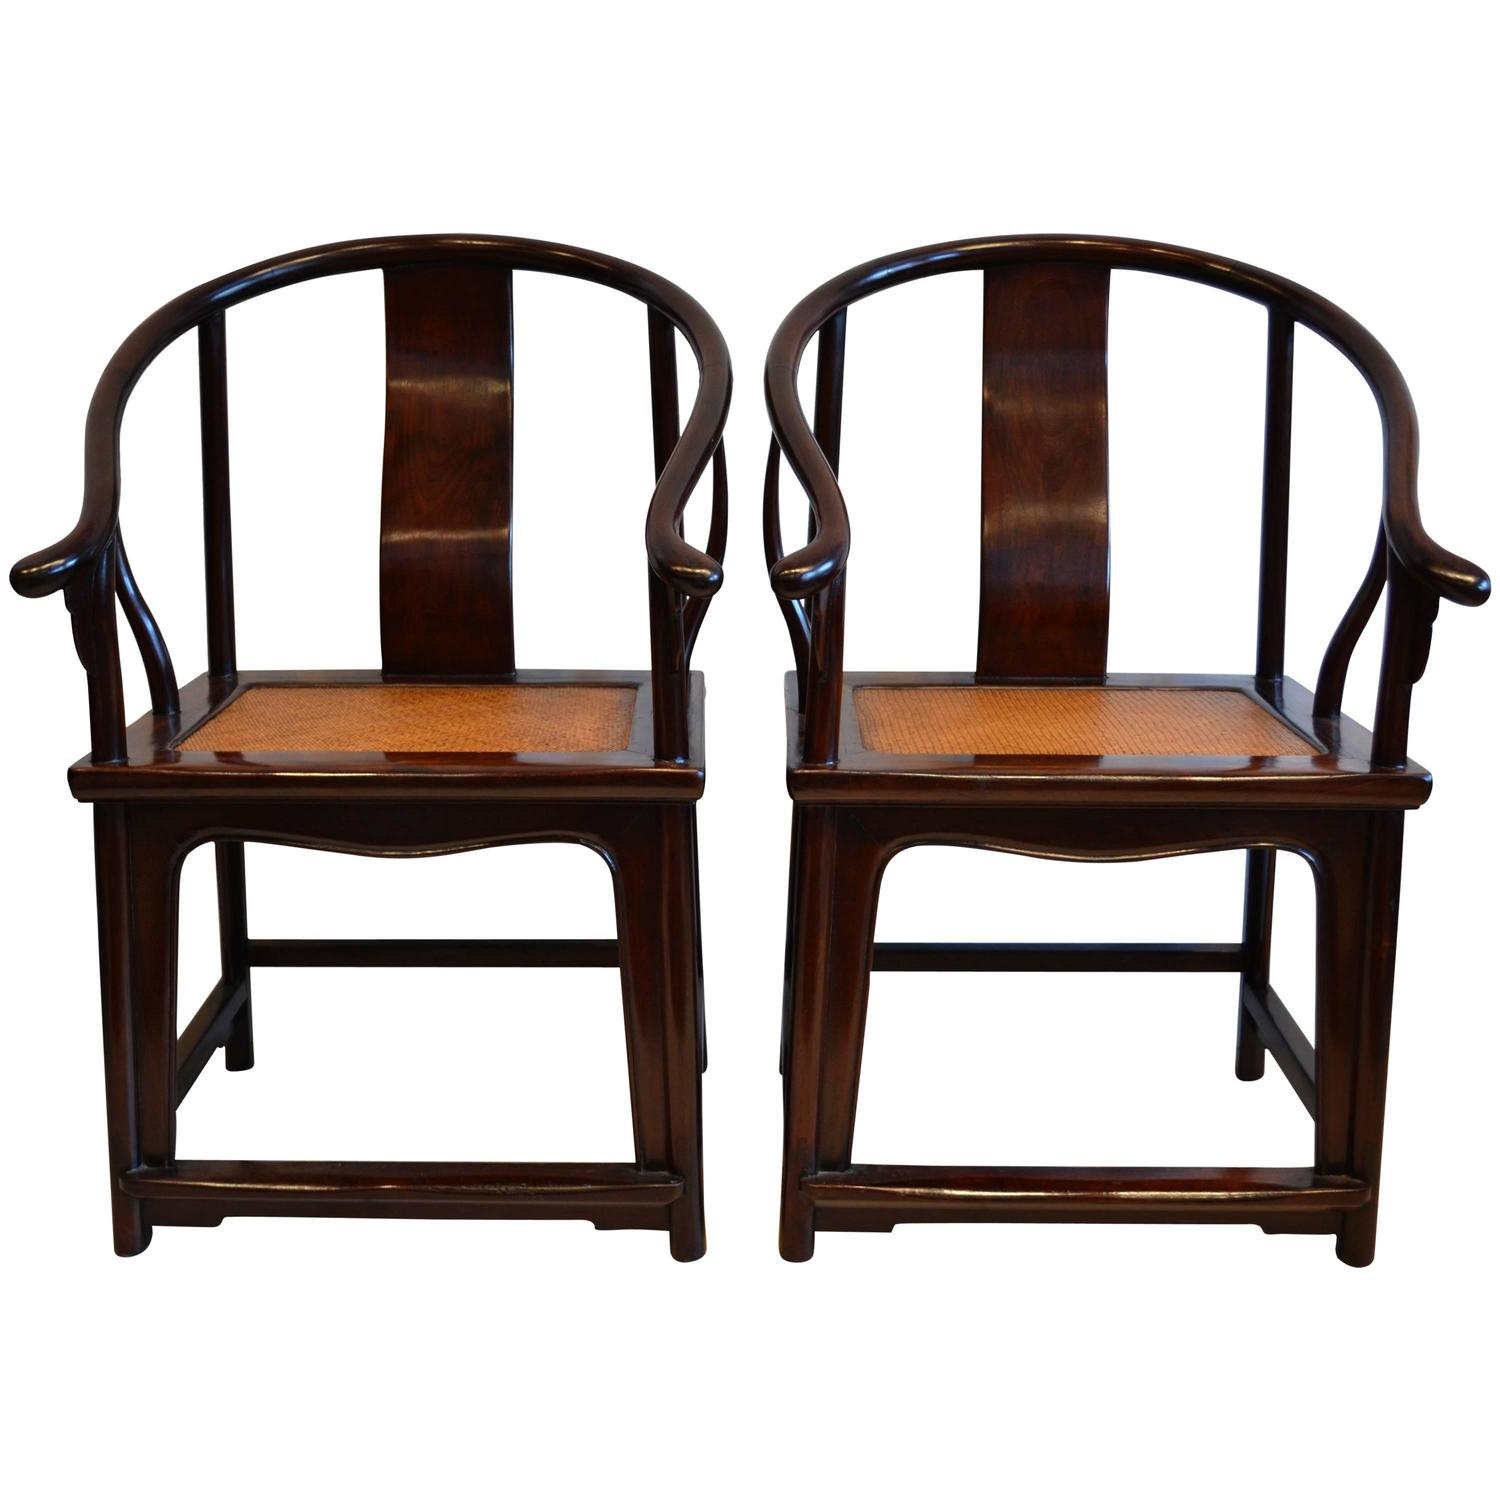 Ordinaire Pair Of Early Chinese Horseshoe Back Arm Chairs At 1stdibs